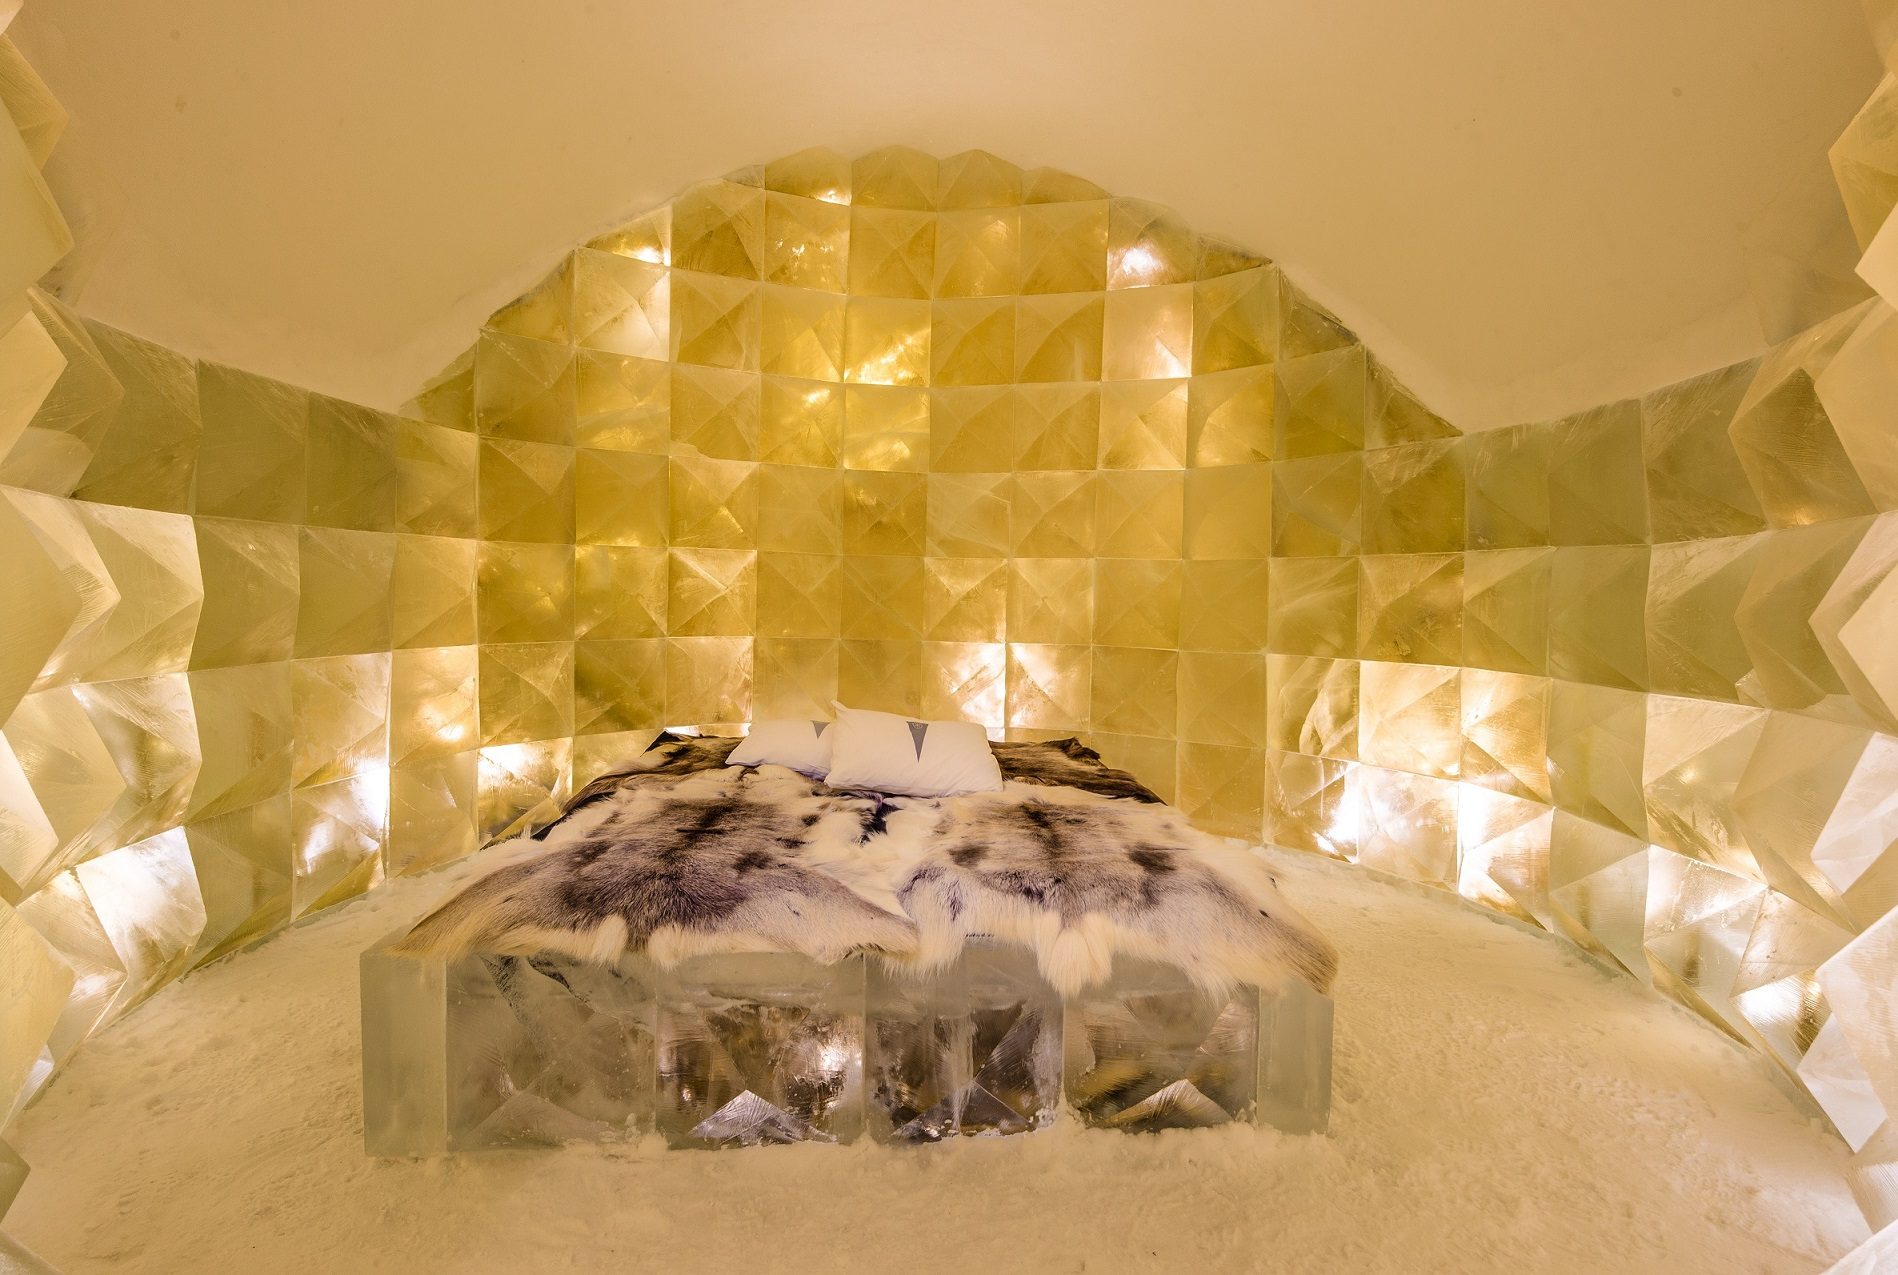 GOLDEN ICE Credit Nicolas Triboulot Jean Marie Guitera Asaf Kliger Icehotel